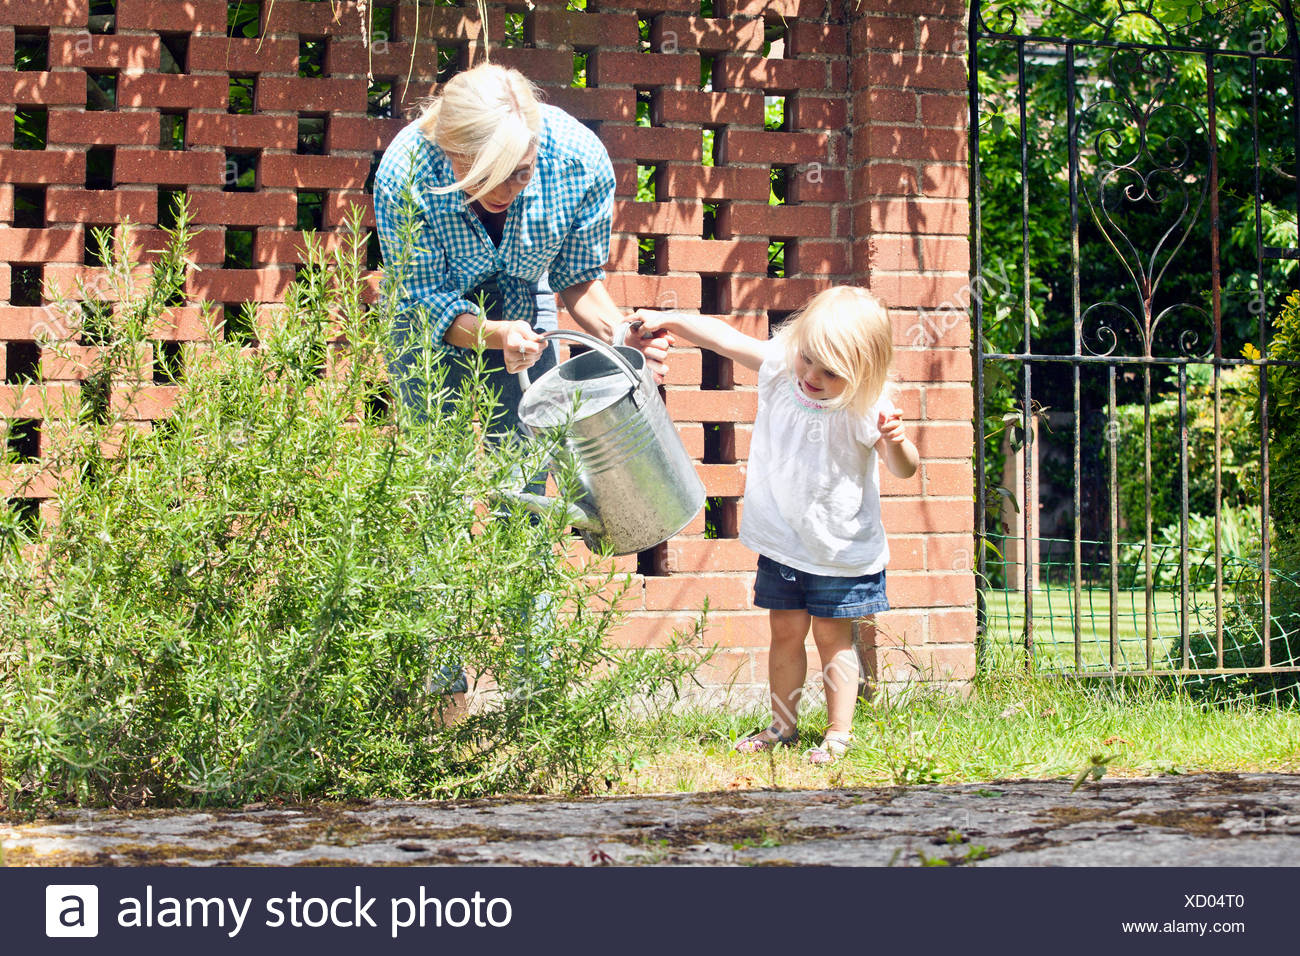 Female toddler helping mother with watering can in garden - Stock Image